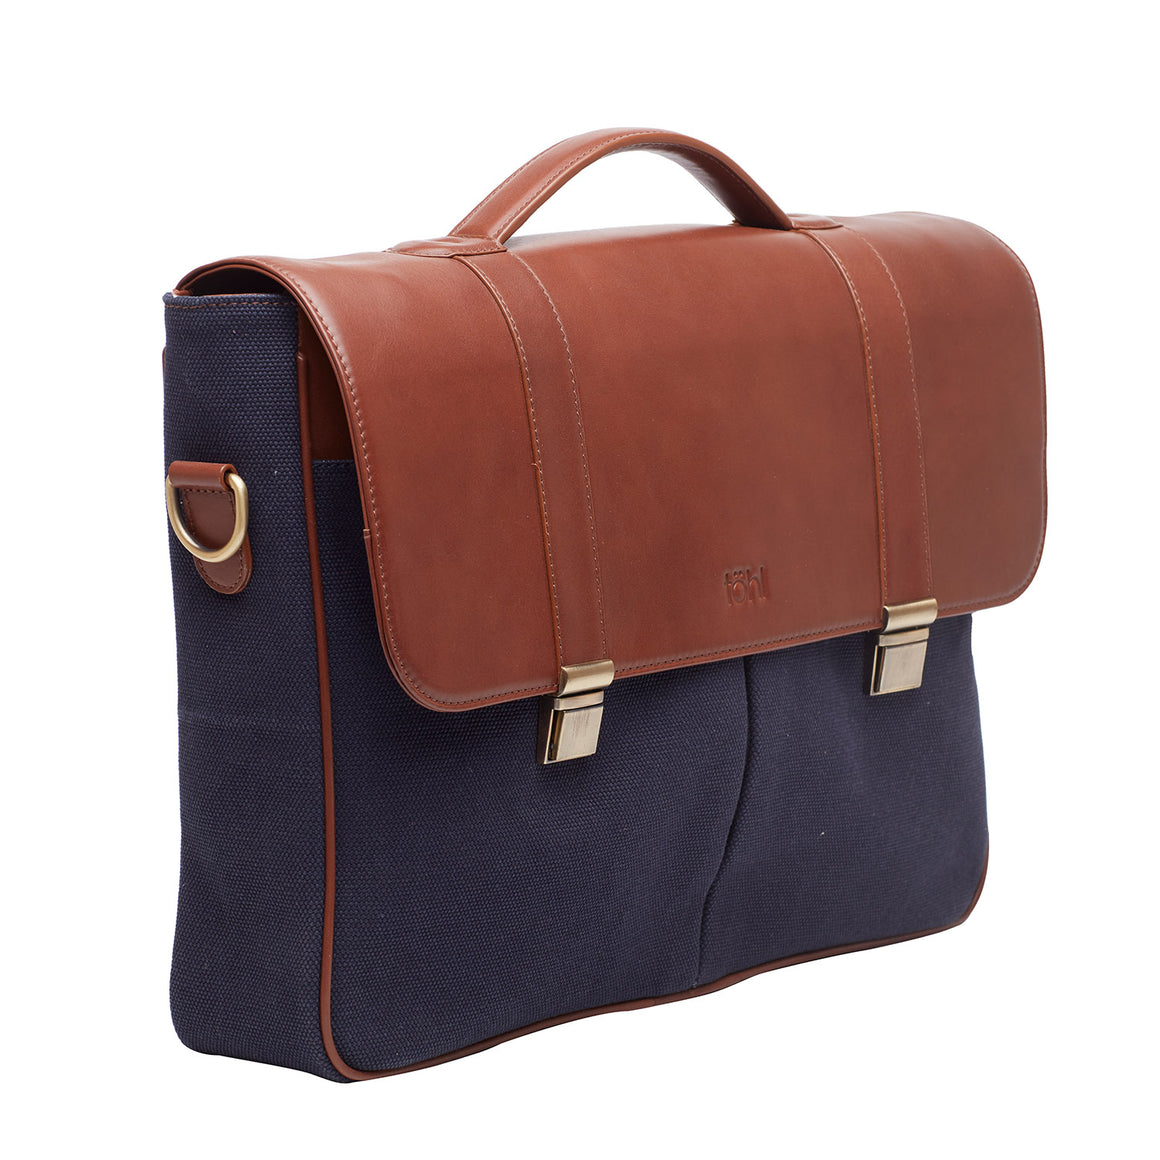 VS 0002 - TOHL CUNEO MEN'S VALISES & SATCHELS - NAVY